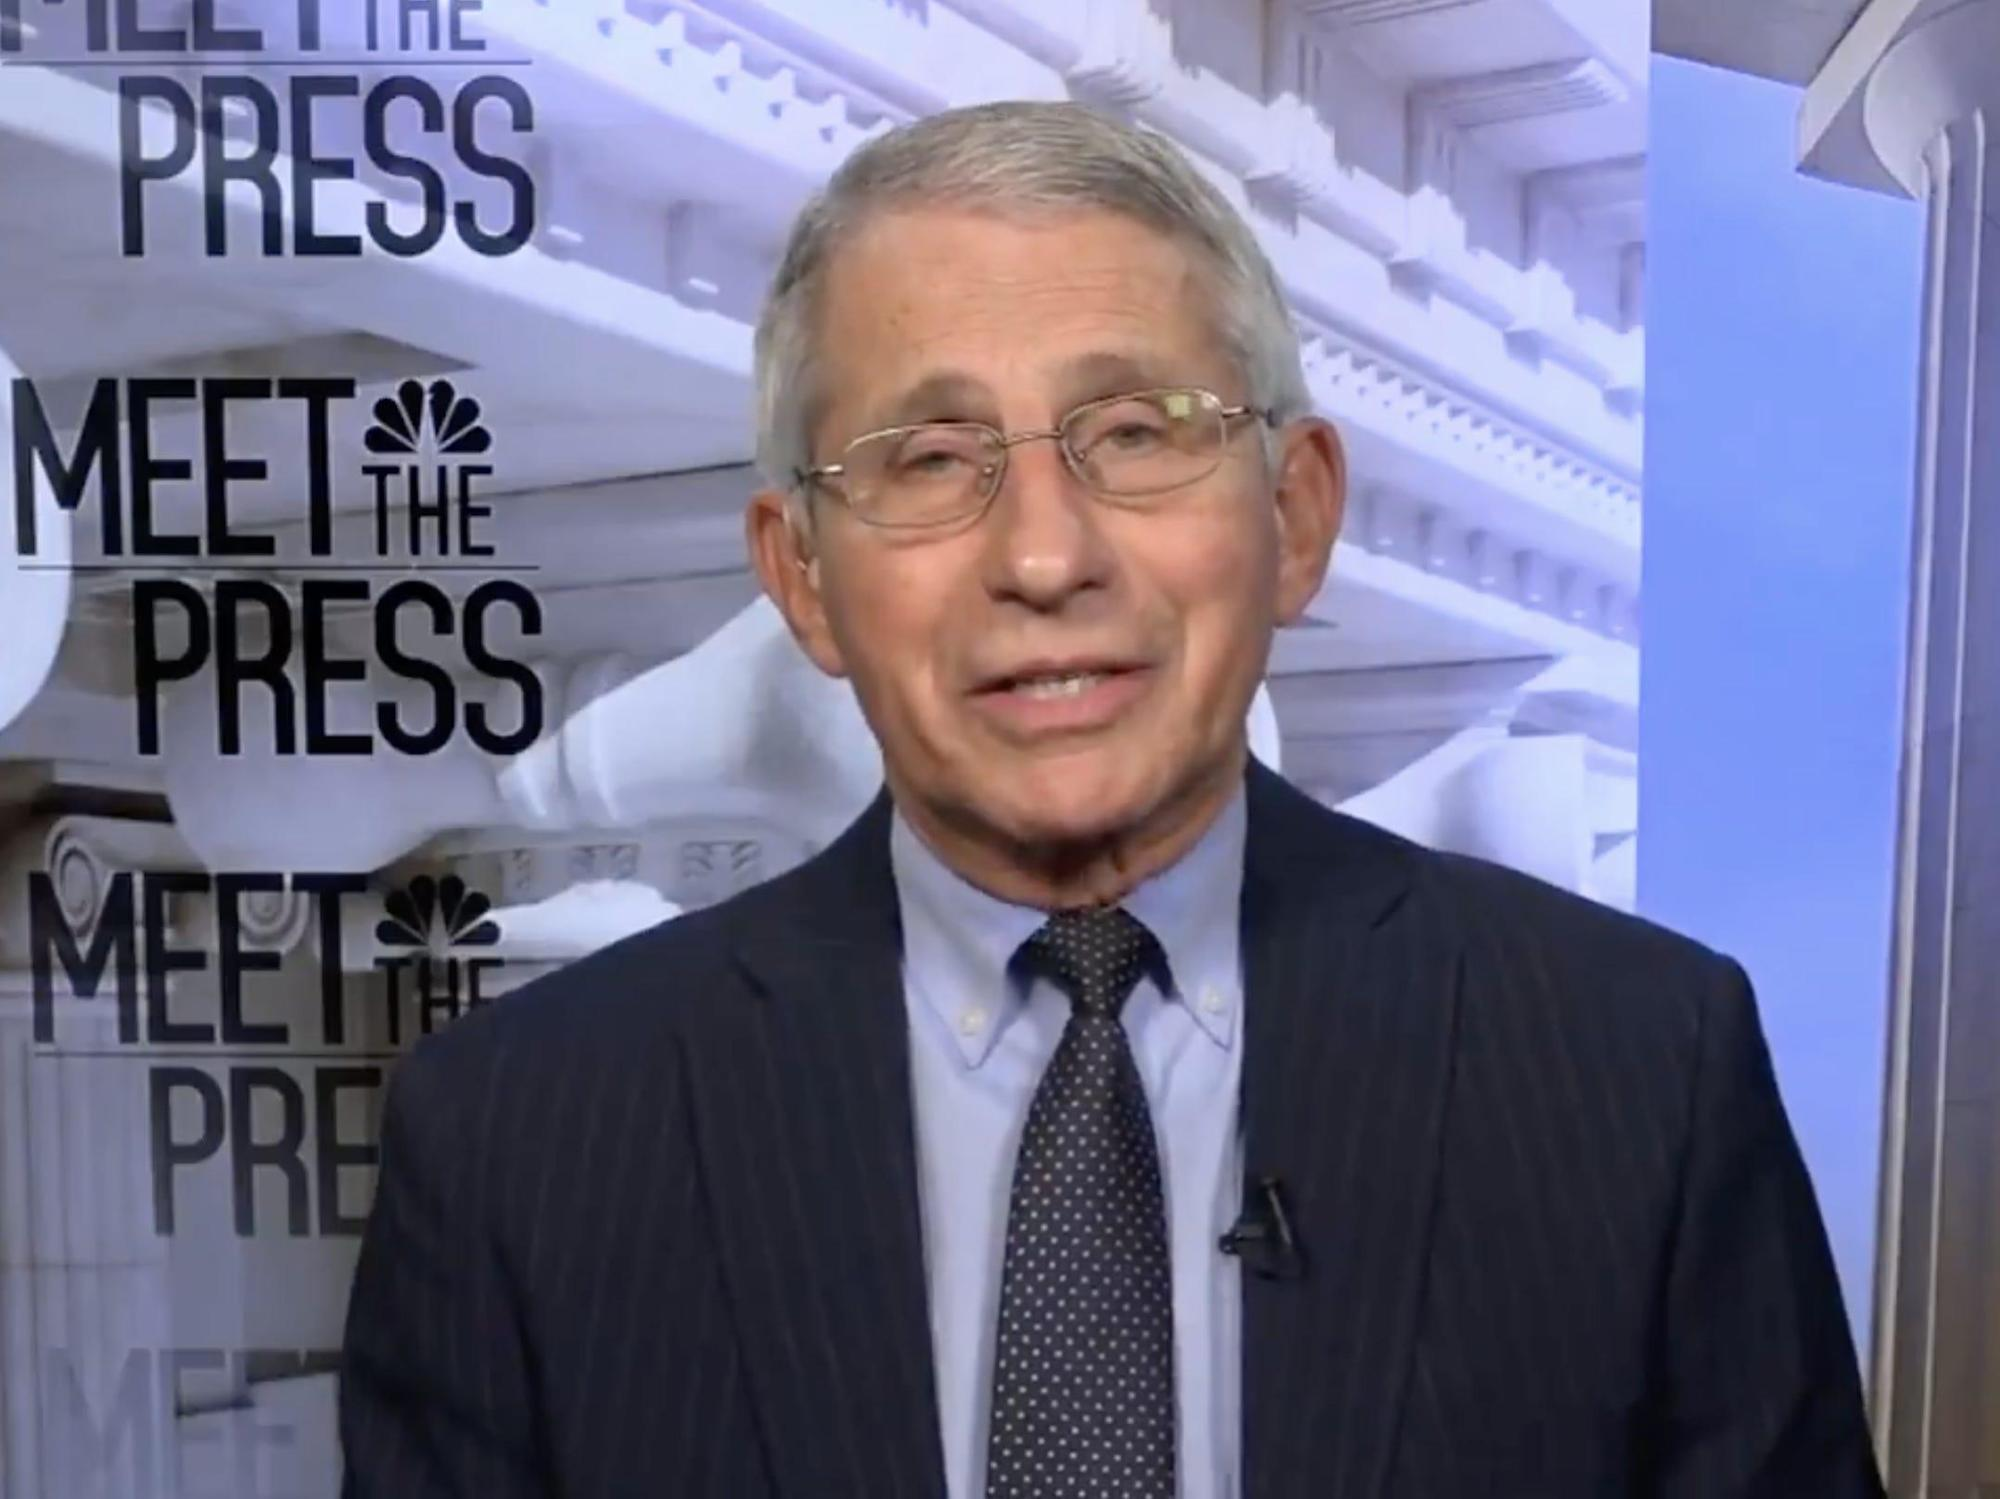 Fauci says a COVID-19 booster shot is a 'public health decision' and not up to companies like Pfizer and Moderna